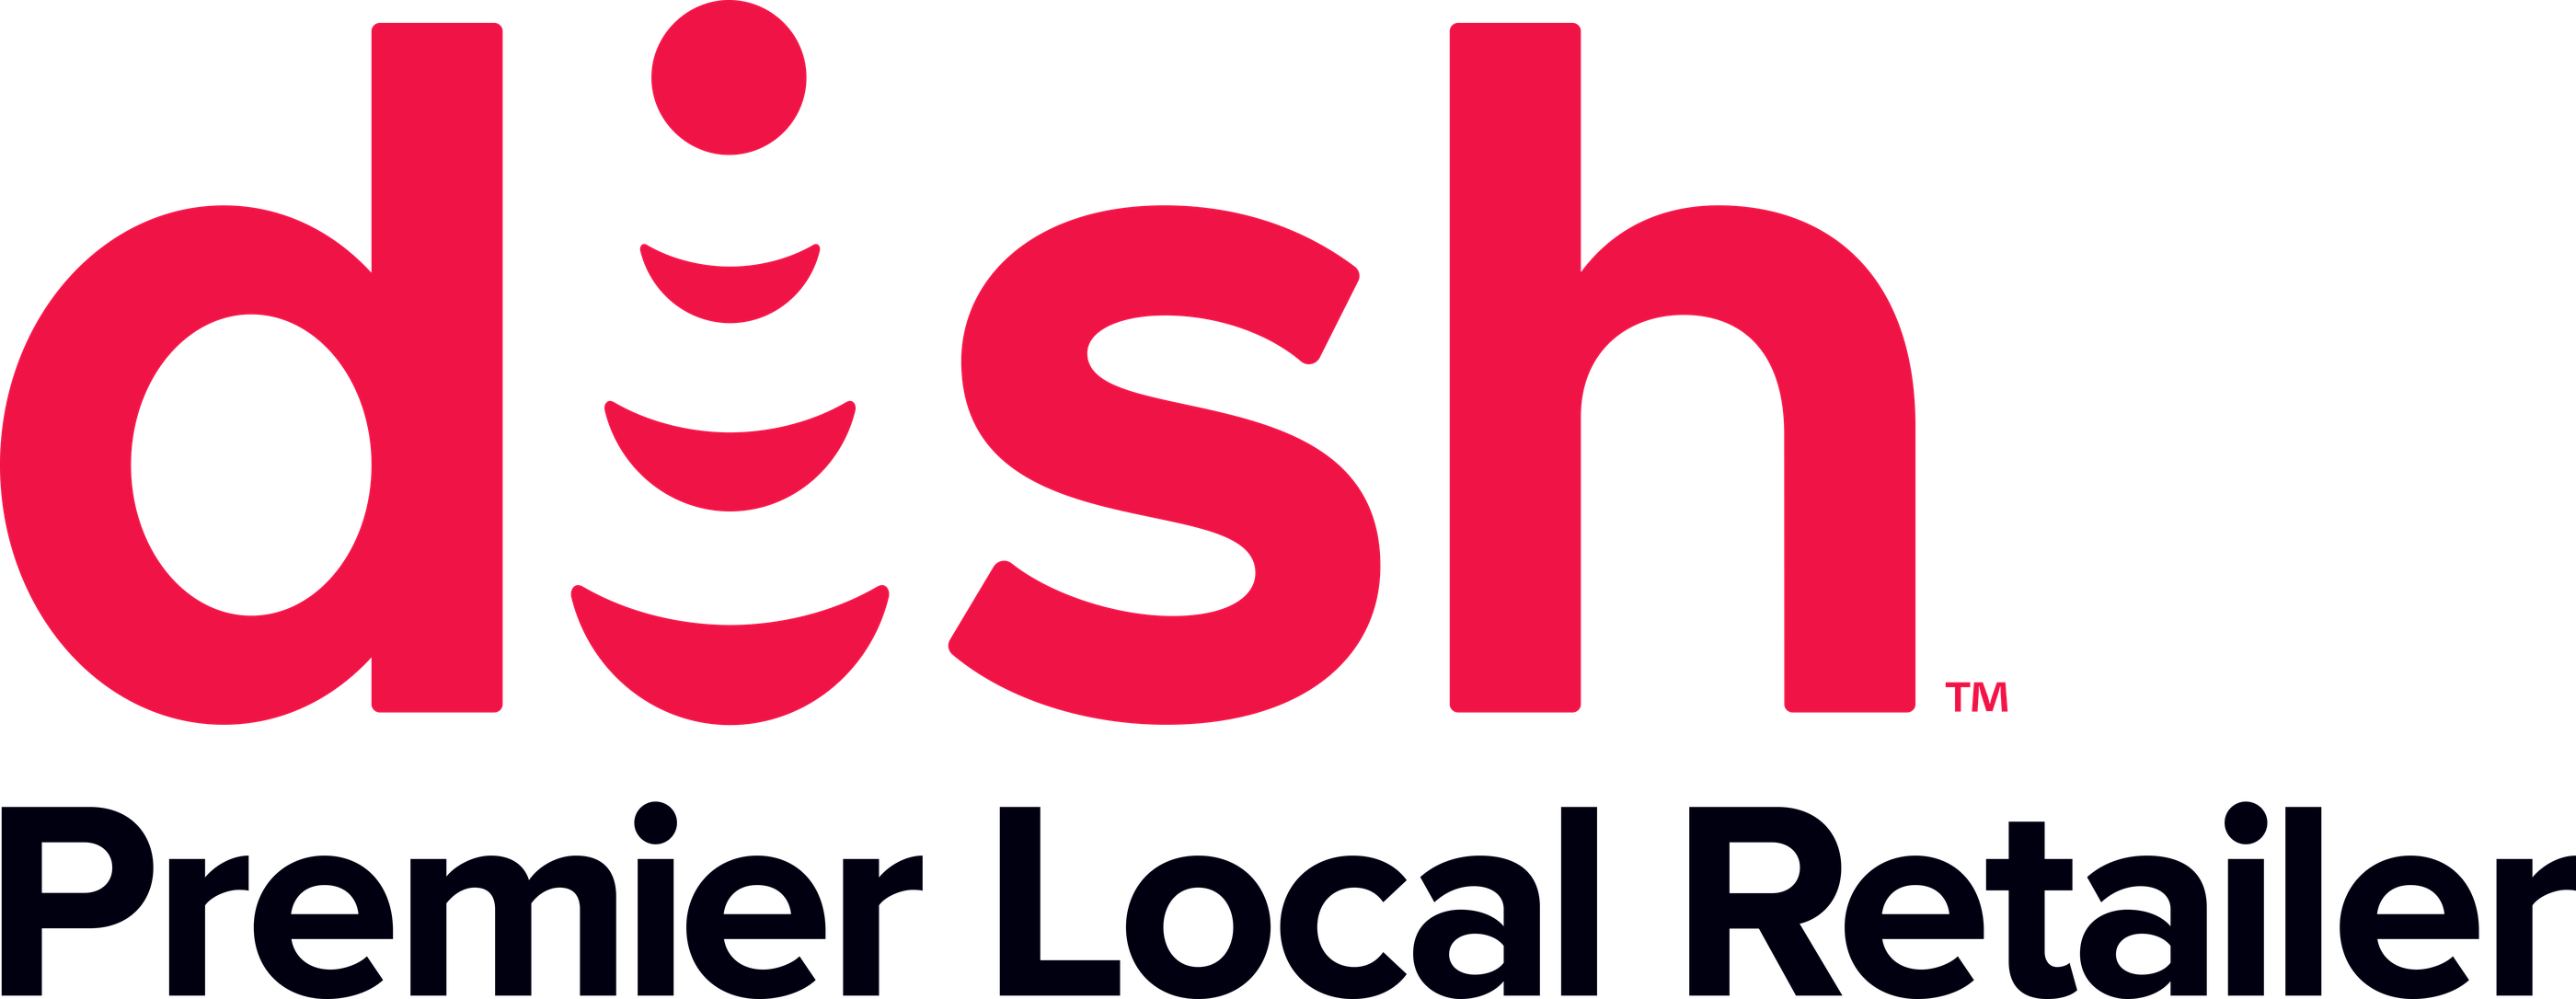 DISH PREMIER Authorized Retailer